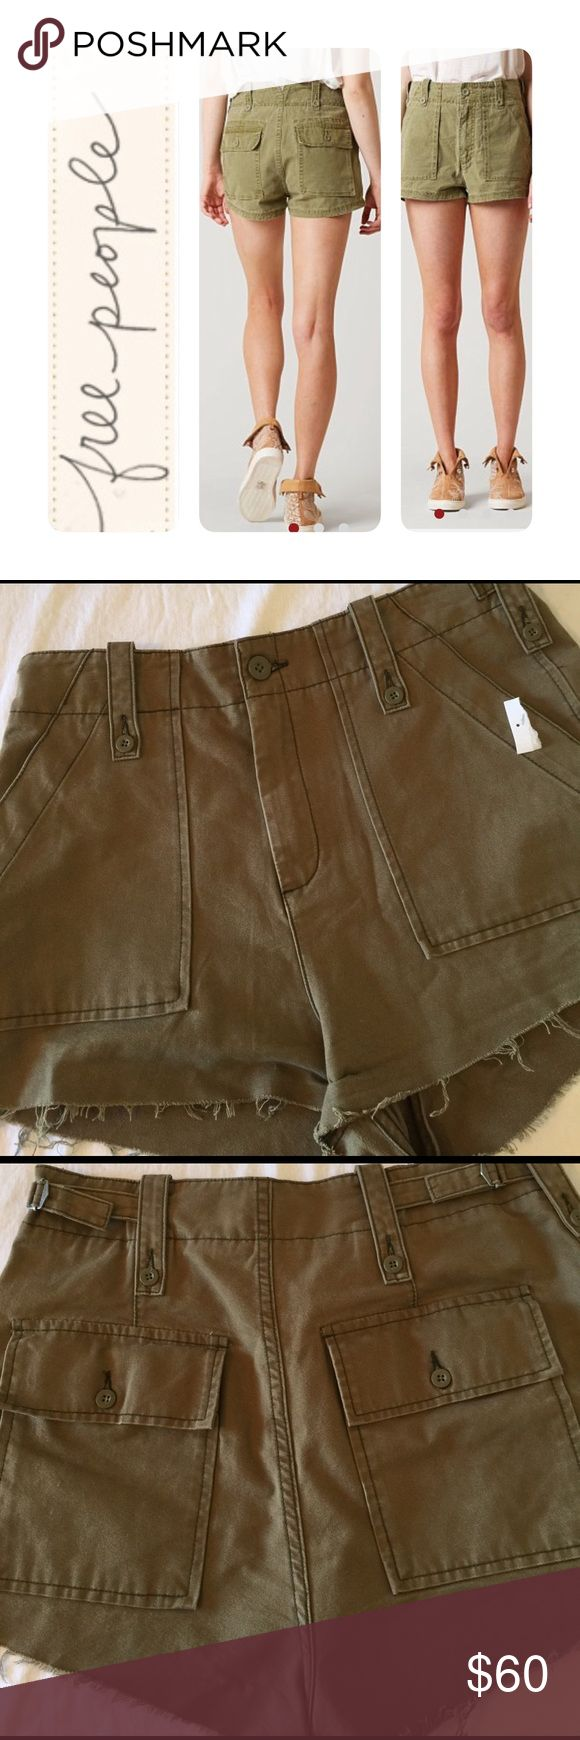 Free people, nwot, 12, military short Check out these awesome military shorts in moss, by free people..nwot, size 12, frayed hem.🚫no trades. roken-in Free People shorts with a high rise and tonal topstitching. Slant front pockets and 2 back pockets. Button closure and zip fly. Fabric: Duck canvas. 100% cotton. Hand wash or dry clean. Rise: 11.75in / 30cm. Inseam: 1.25in / 3cm. Fit. Rise: 11.75in / 30cm. Inseam: 1.25in / 3cm. Free People Shorts